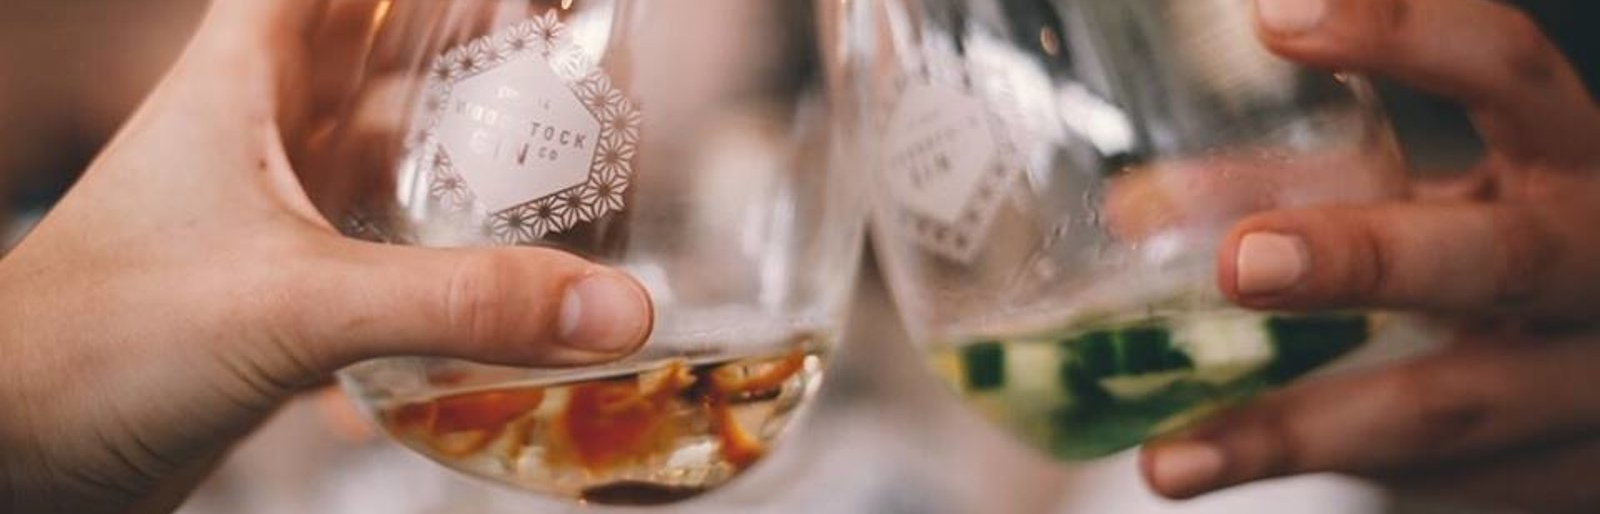 Woodstock Gin: The Perfect Addition To Your Wedding Bar